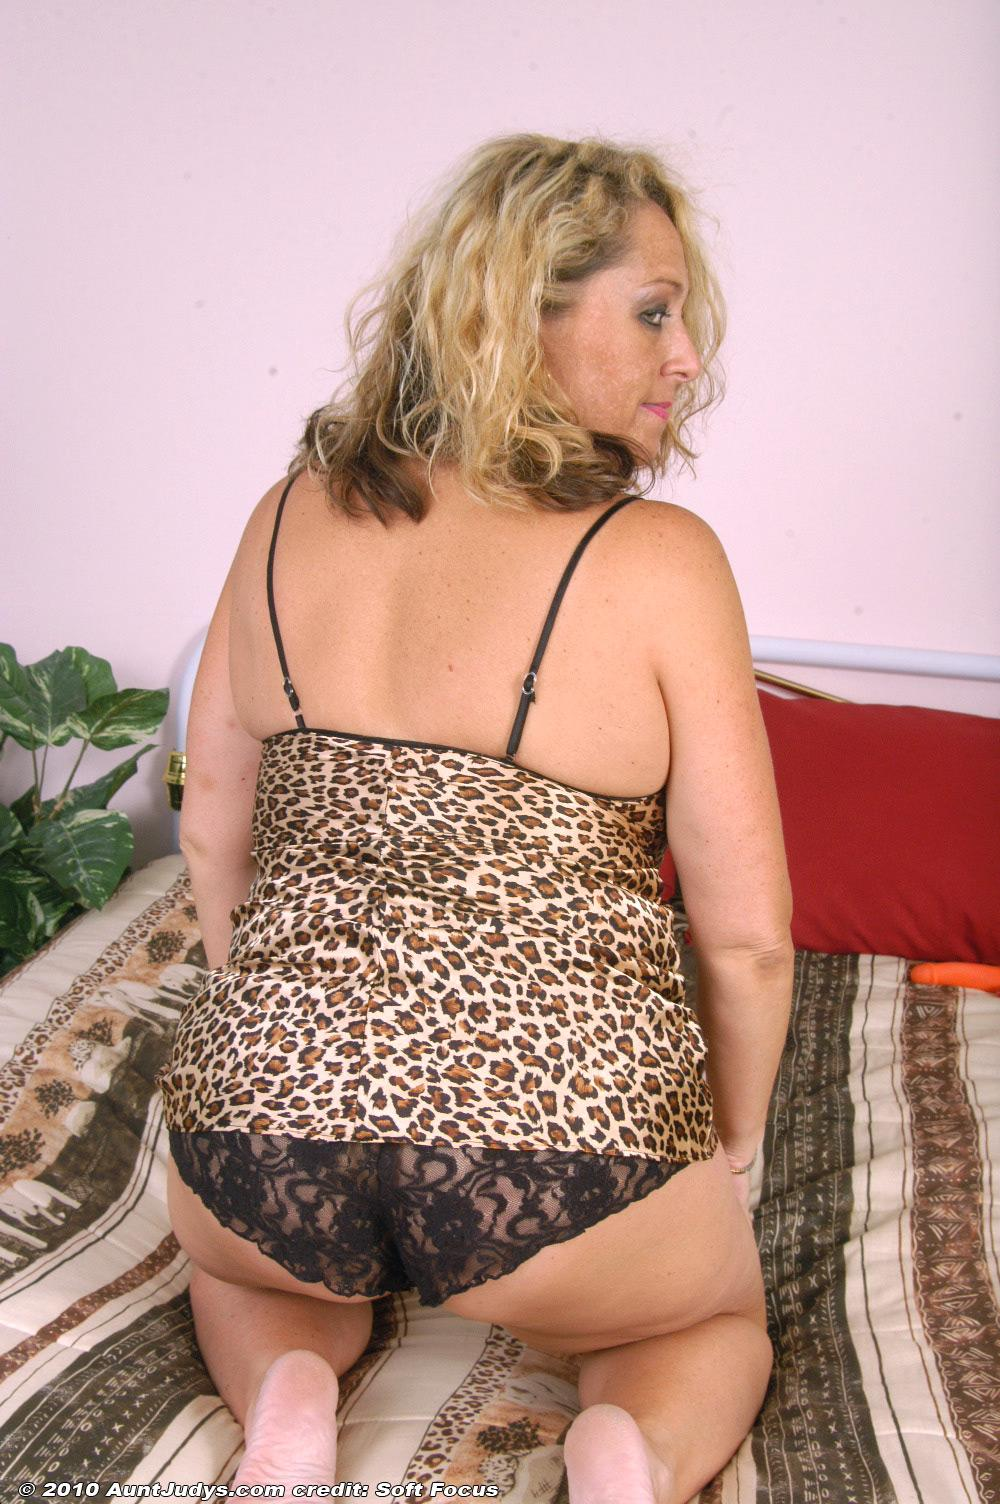 Chunky Older Golden-Haired Woman Peeling Off Lingerie And -6798